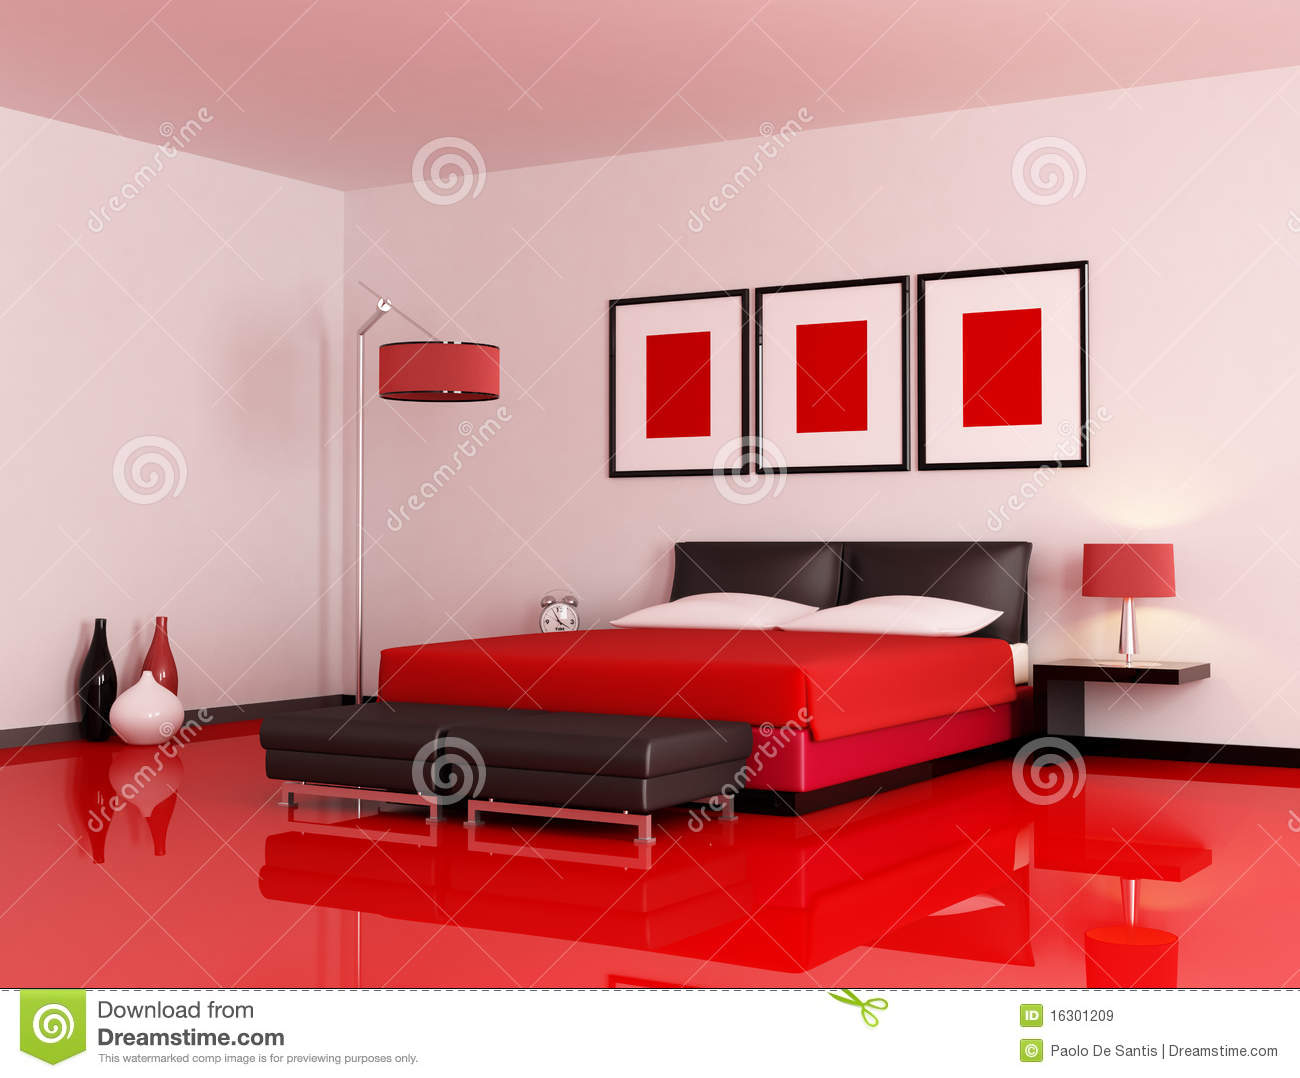 Modern Bedroom Red modern red and black bedroom royalty free stock images - image